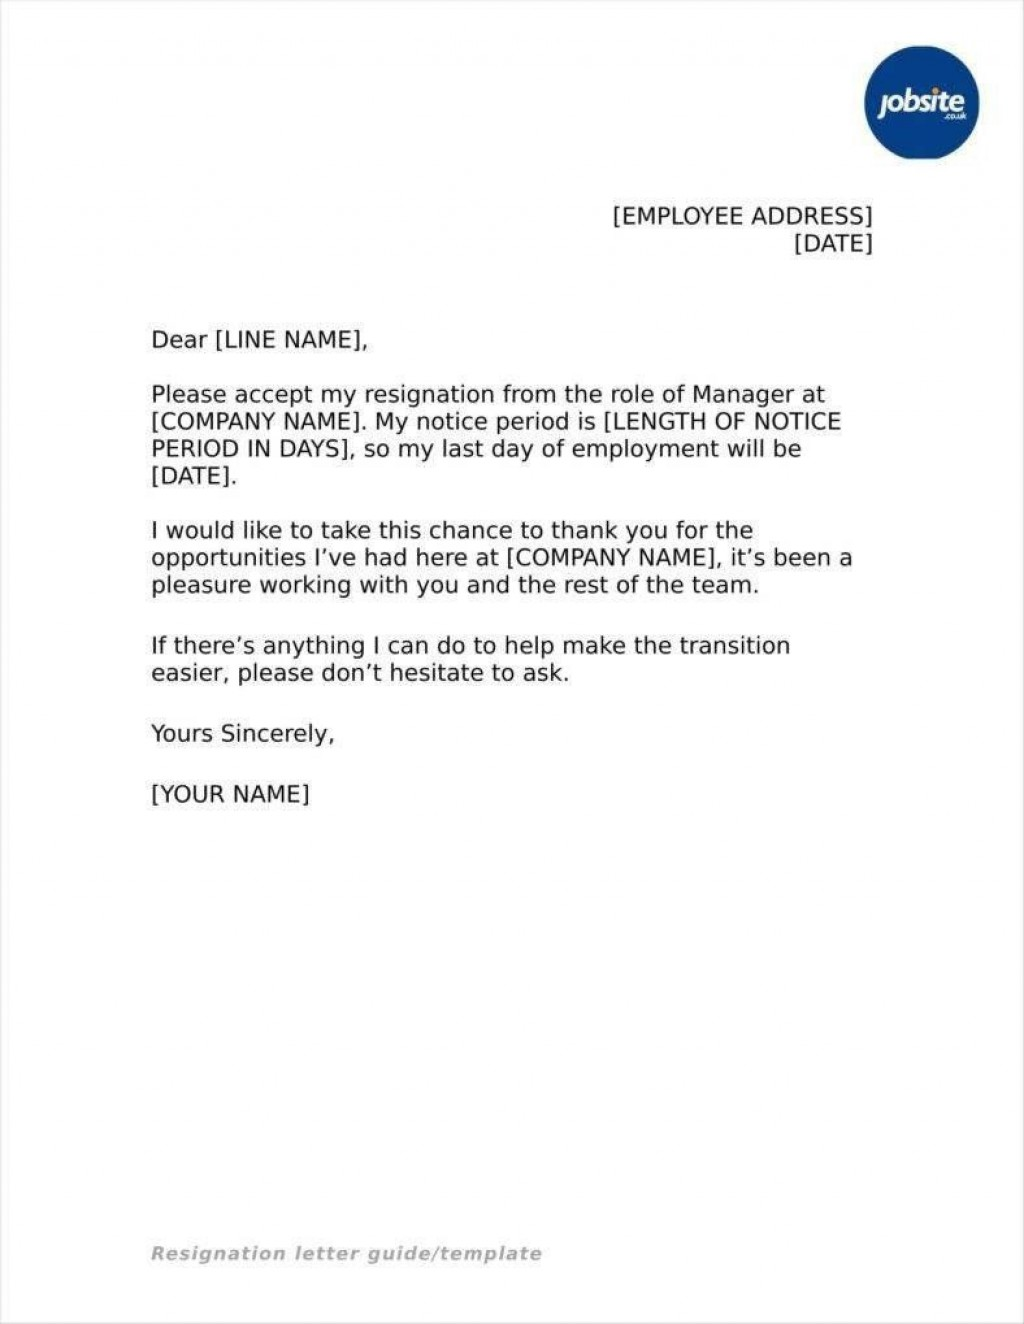 005 Simple Resignation Letter Sample Free Doc Concept  .docLarge